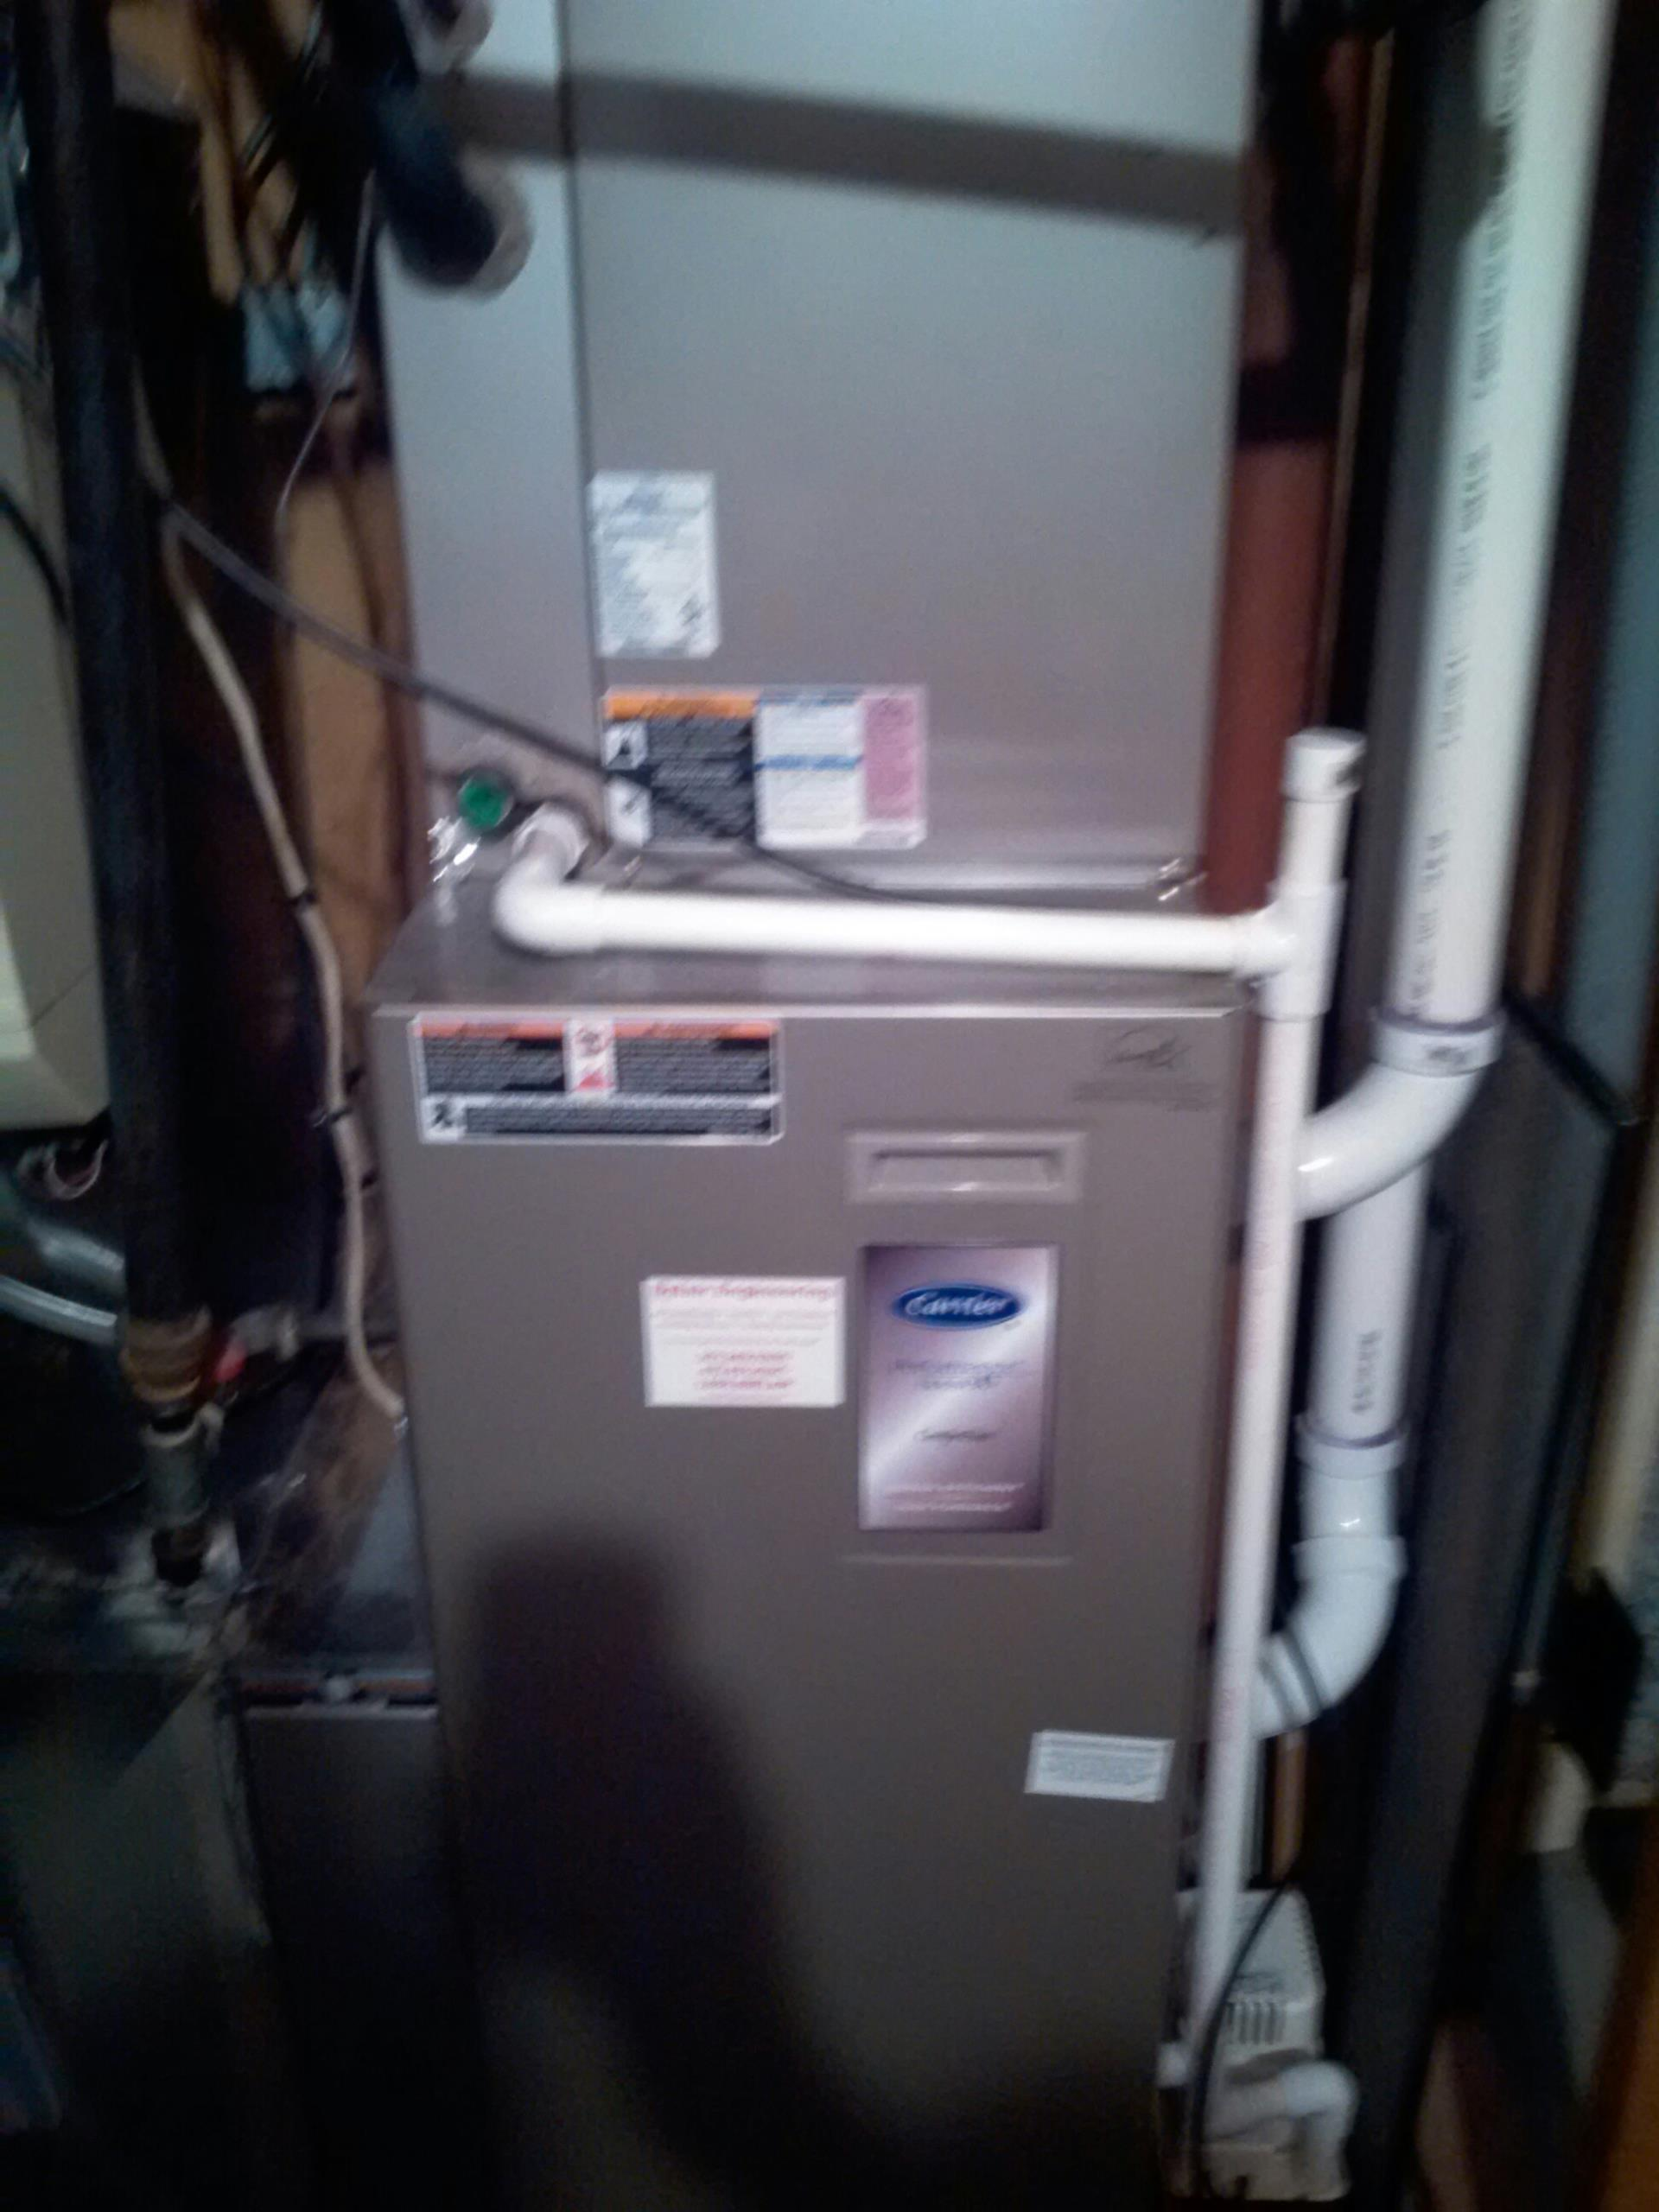 Crofton, MD - gas furnace heating & air conditioning system replacement installation repair service call crofton maryland 21114